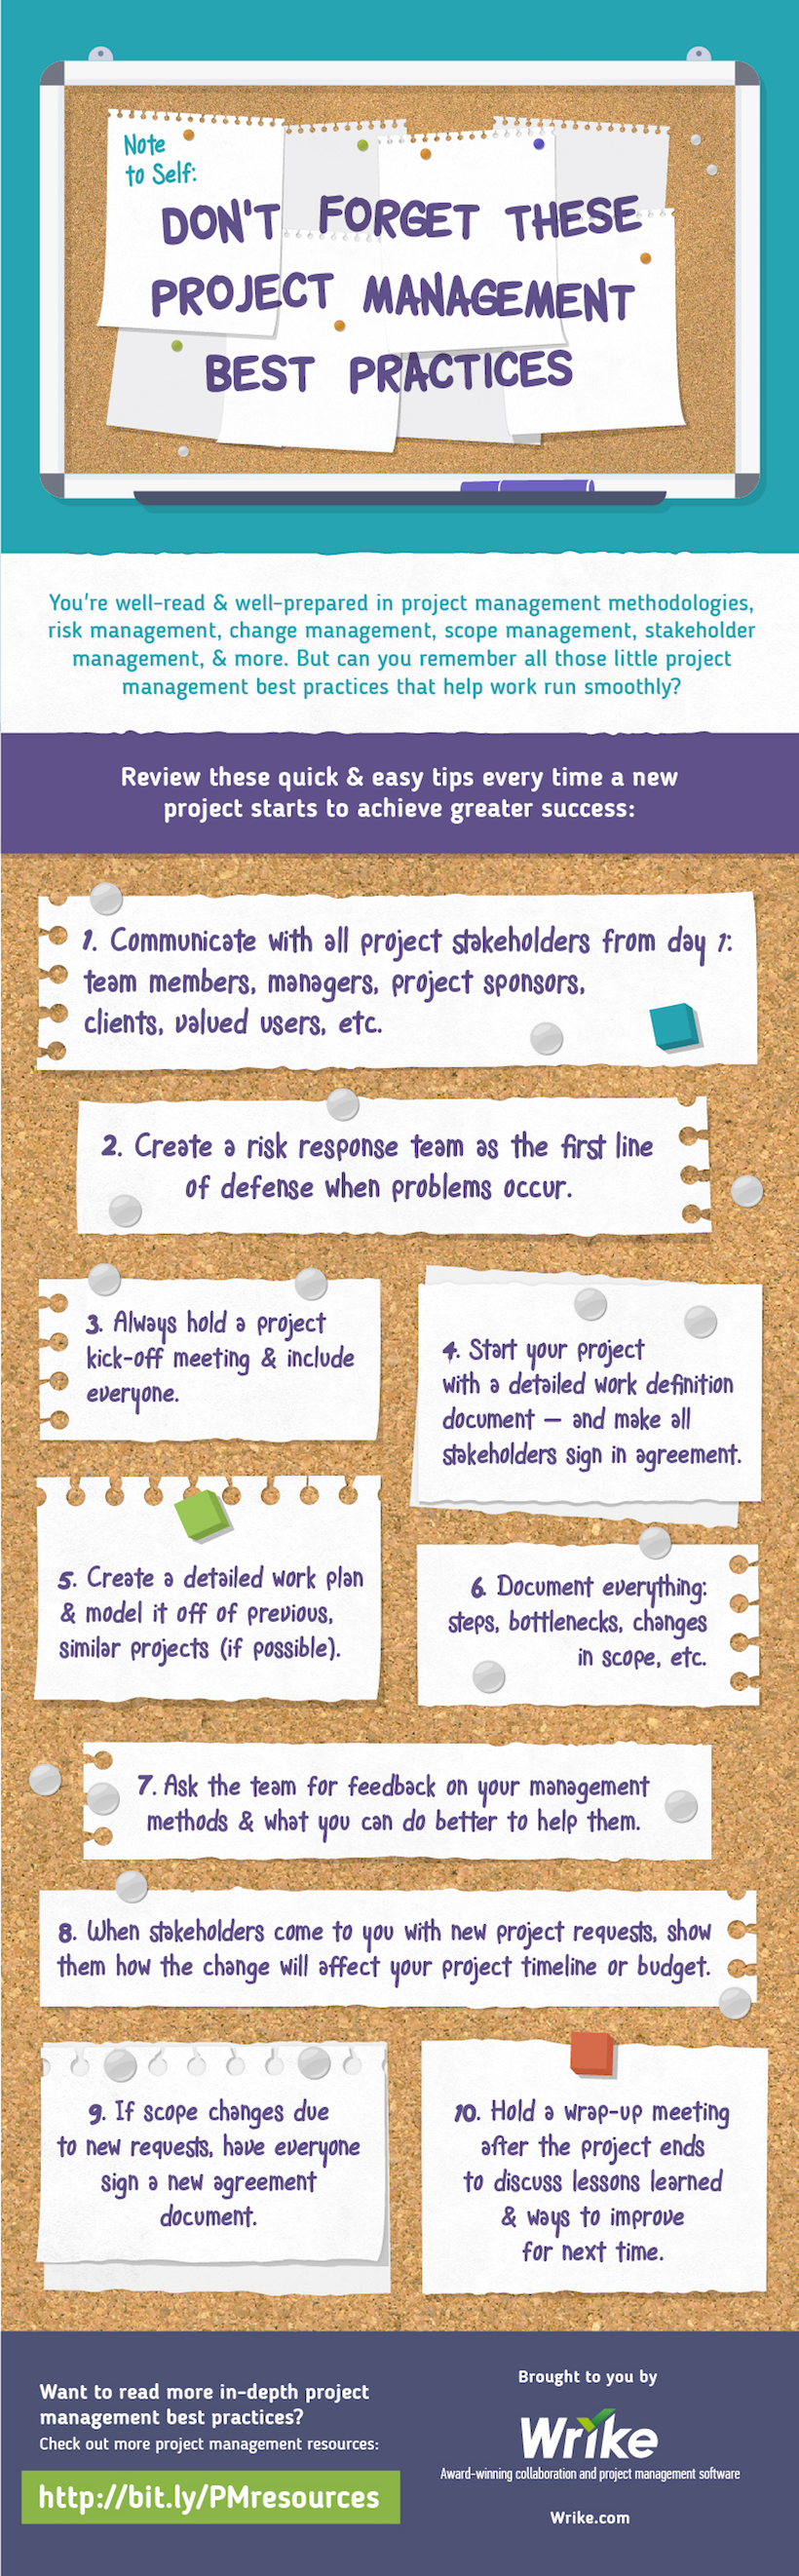 Make every project more efficient more successful by reading dont forget these 10 project management best practices infographic xflitez Image collections